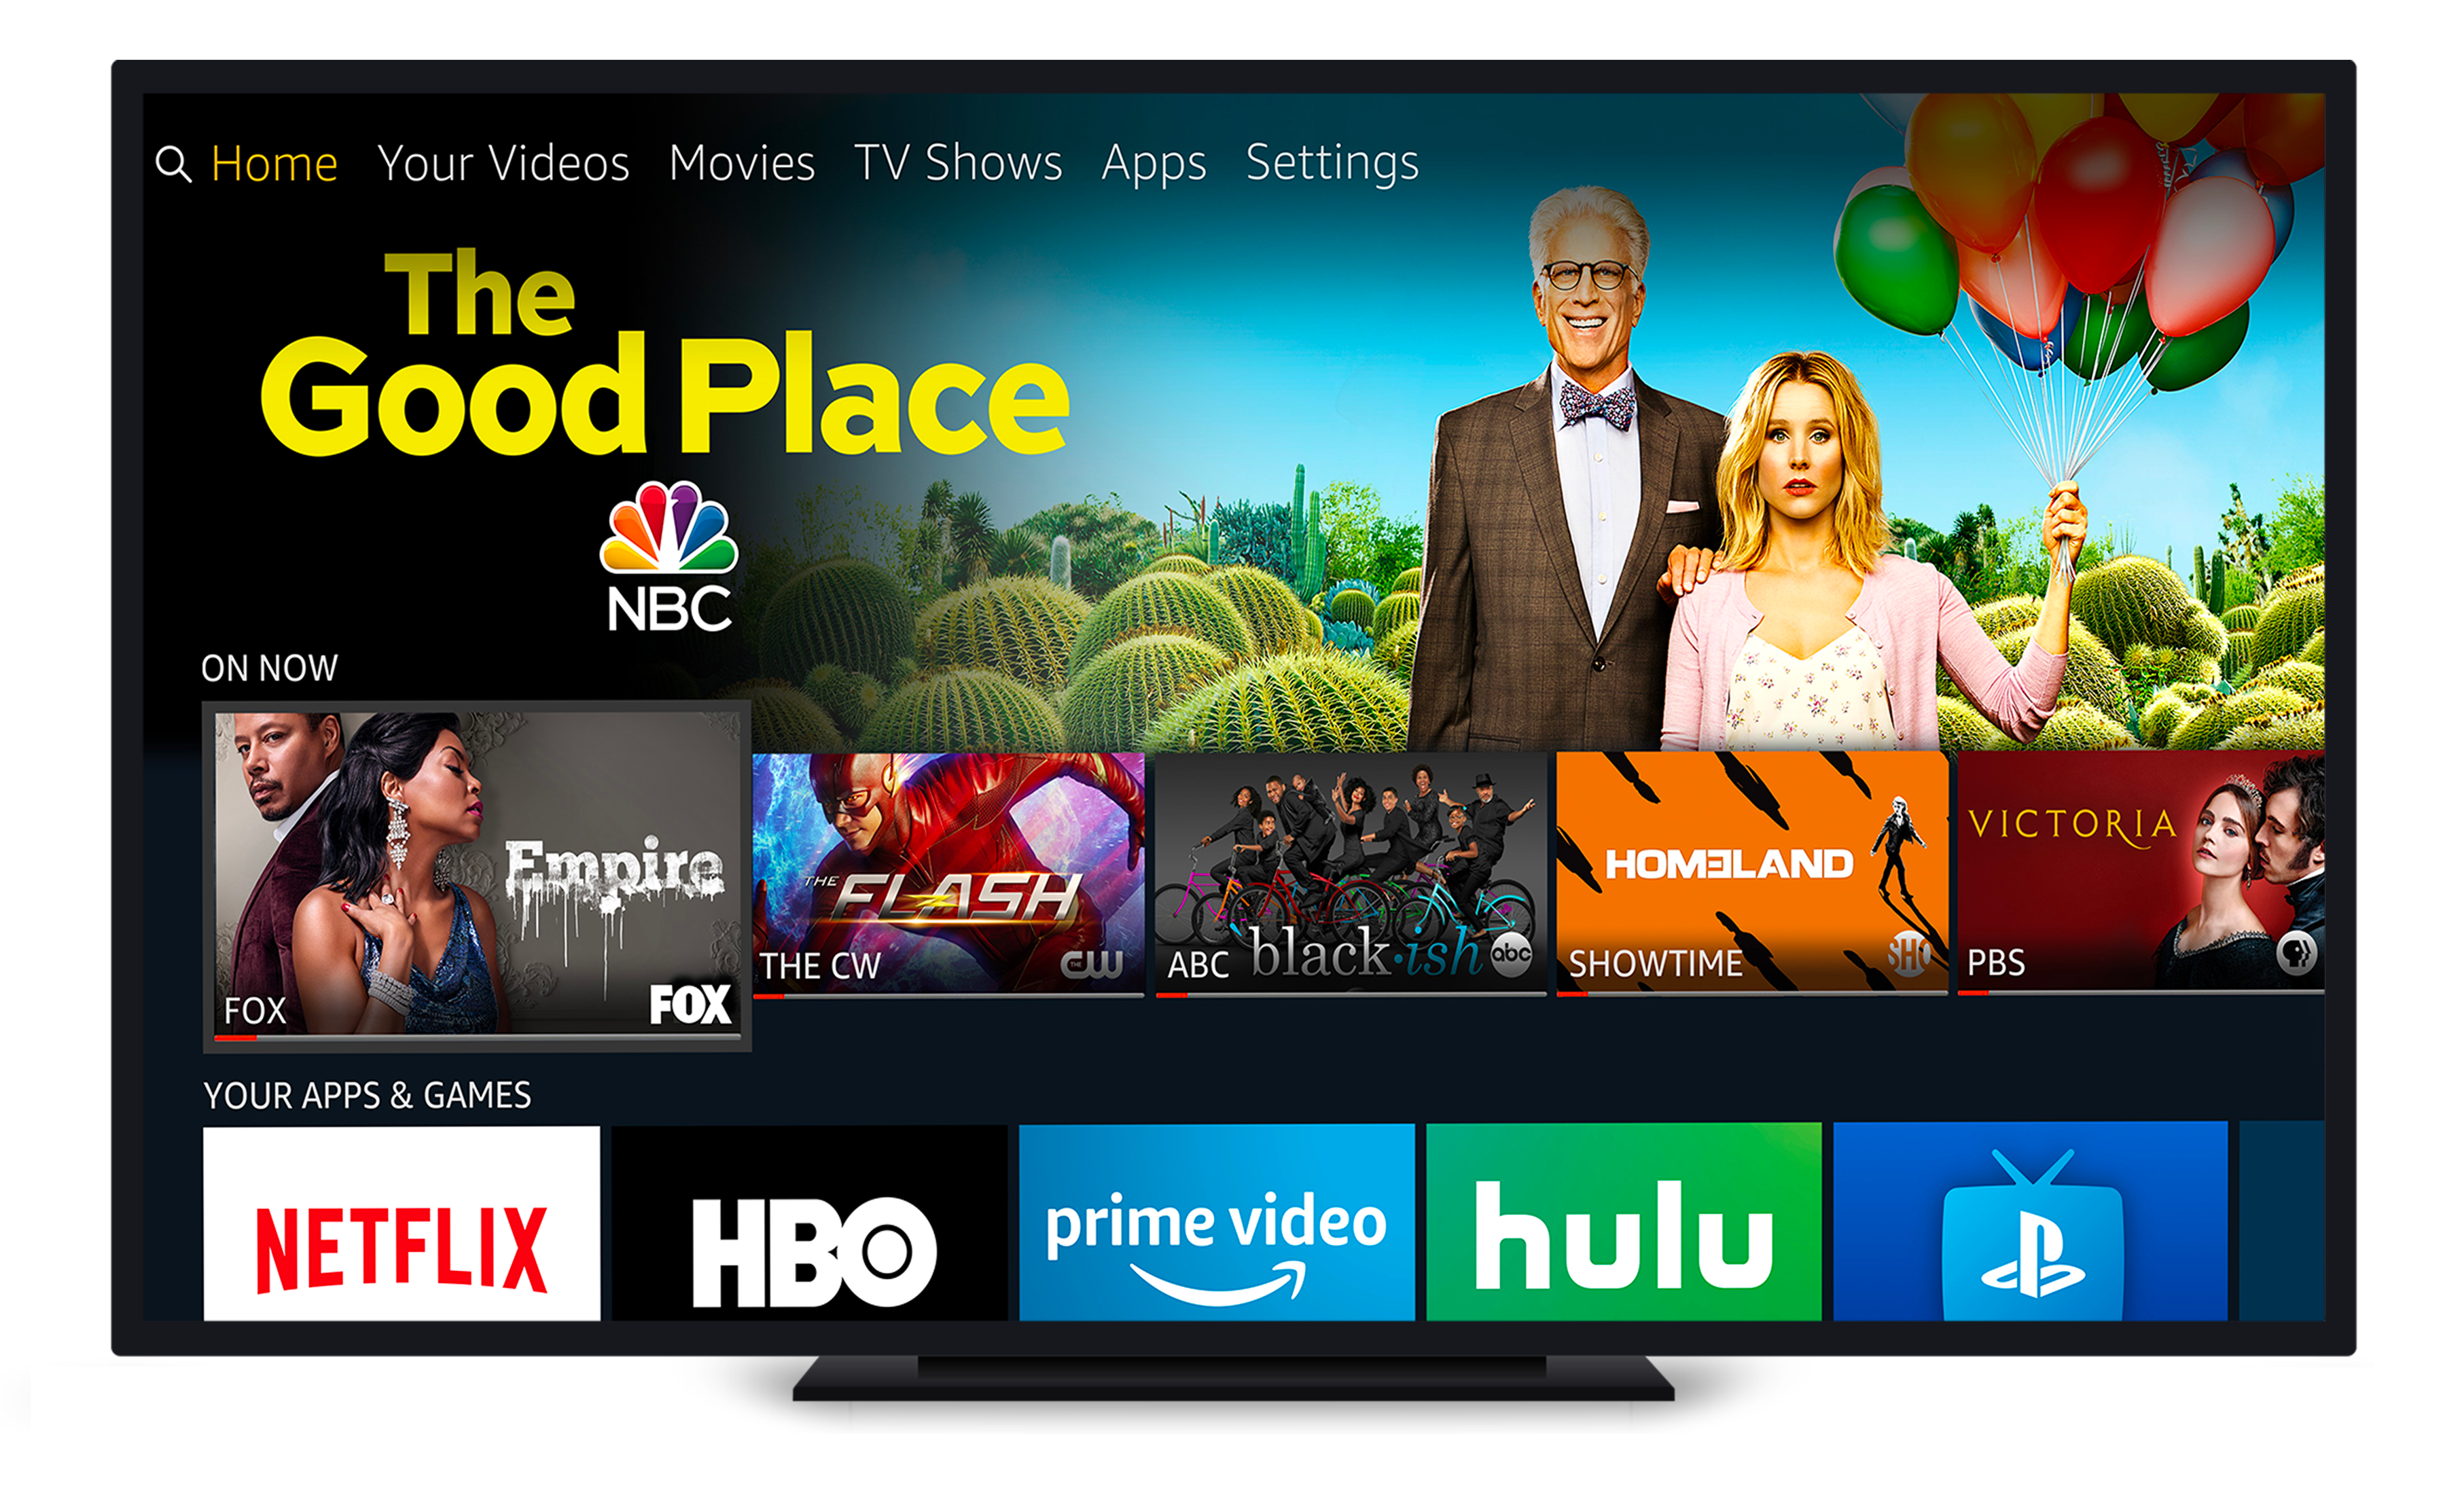 Image of Alexa-enabled television